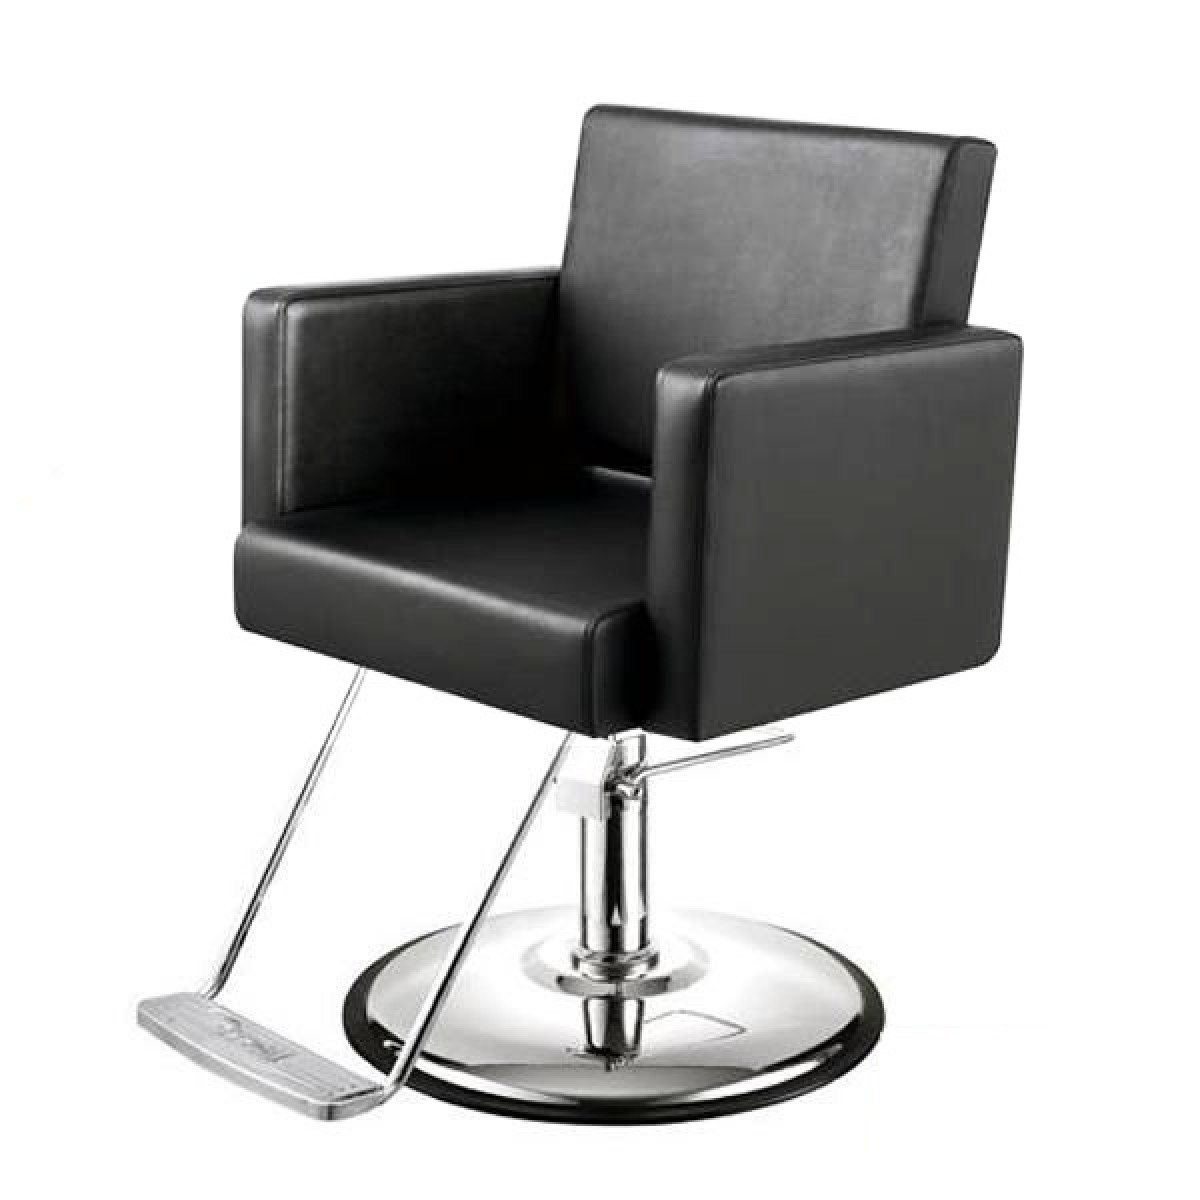 """CANON"" Salon Styling Chair, salon chairs, salon chair"